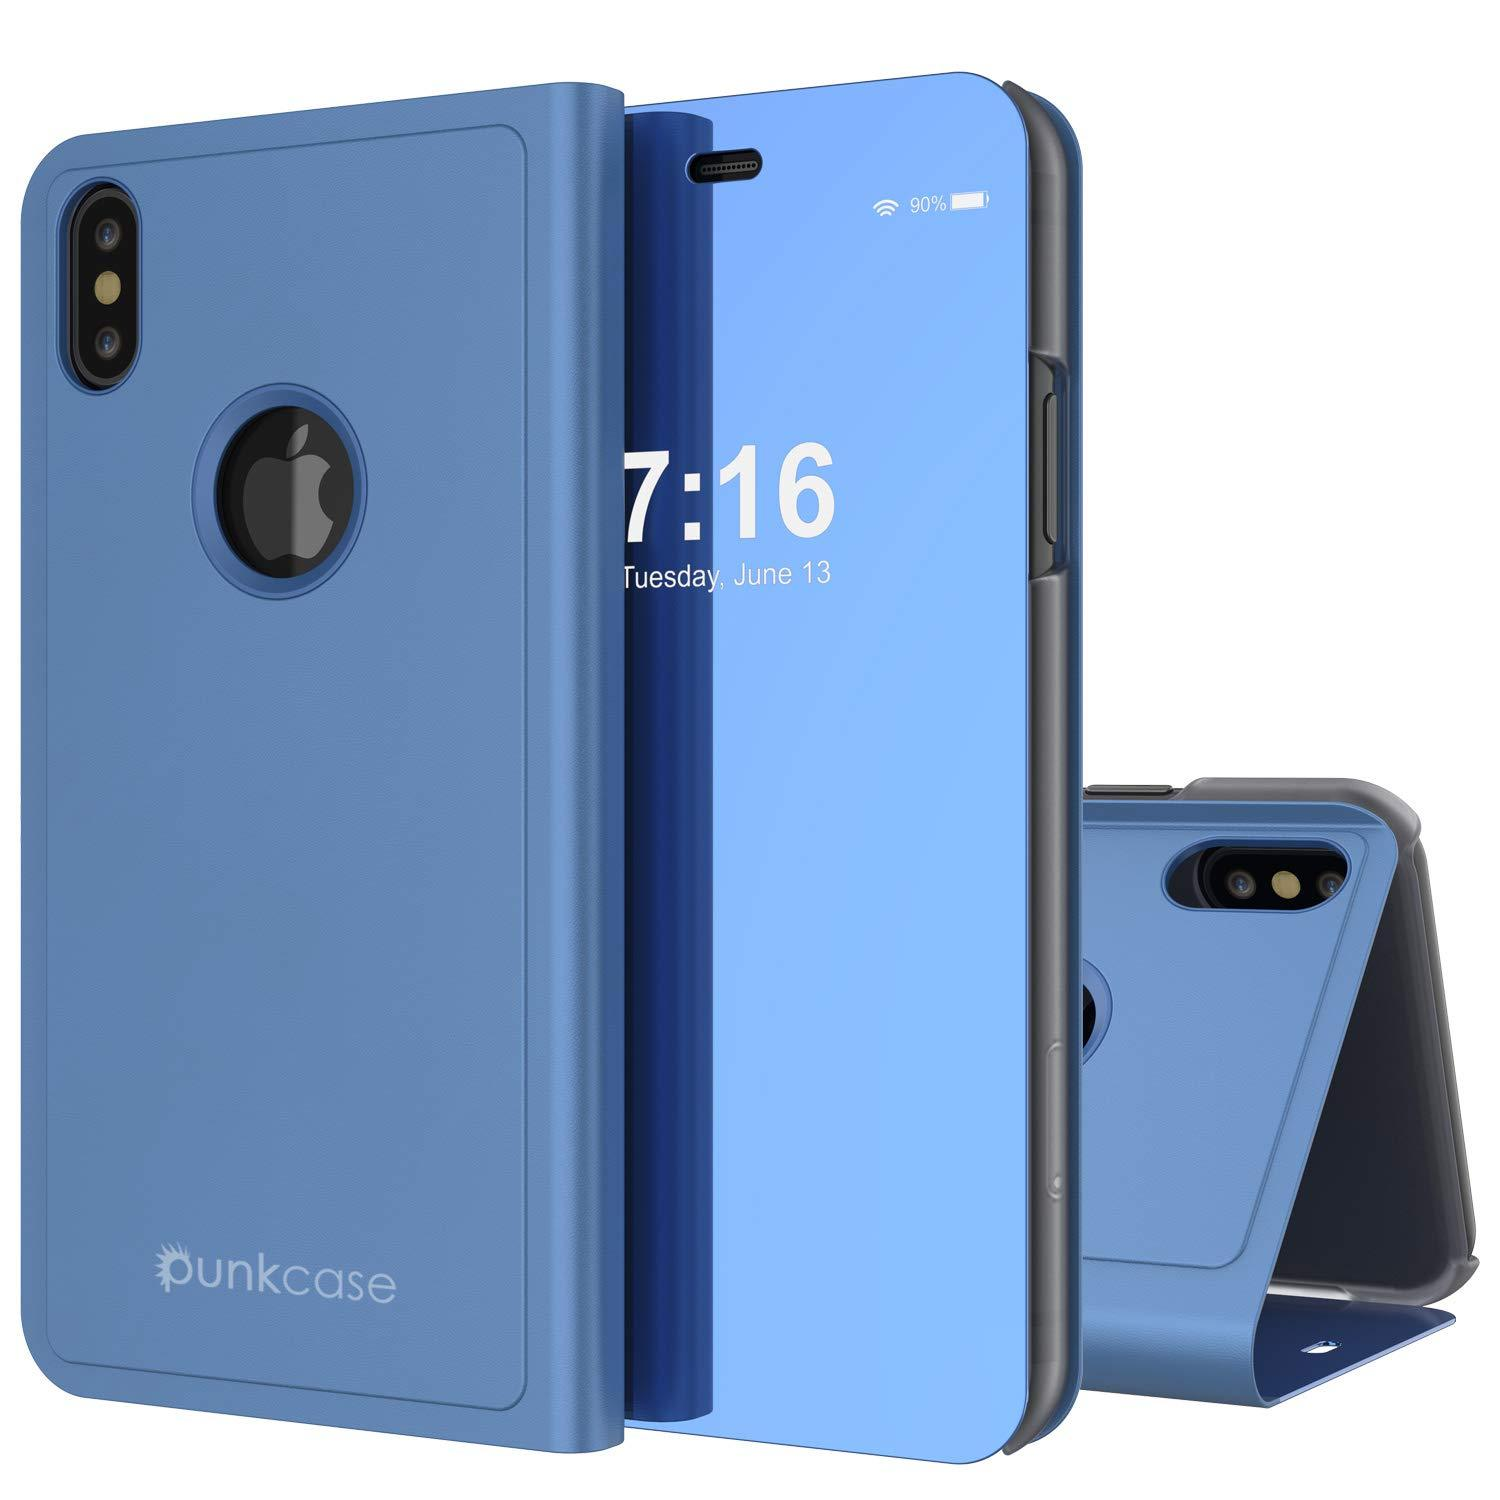 Punkcase iPhone XS Max Reflector Case Protective Flip Cover [Blue]